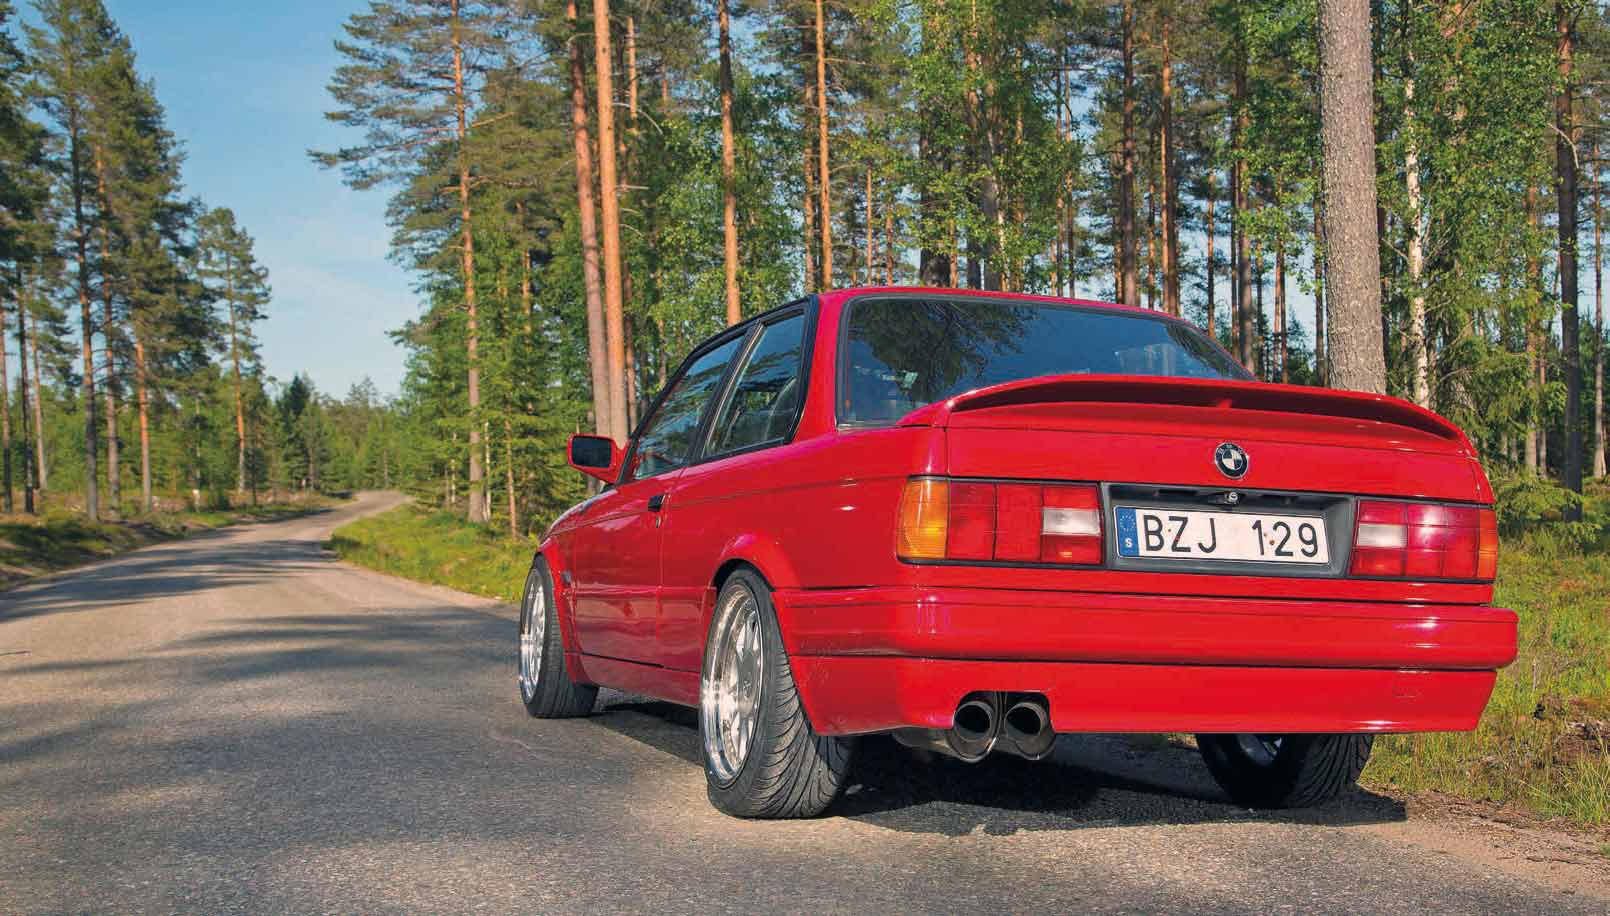 Wild 400hp S62 V8-swapped BMW E30 Coupe - Drive-My Blogs - Drive